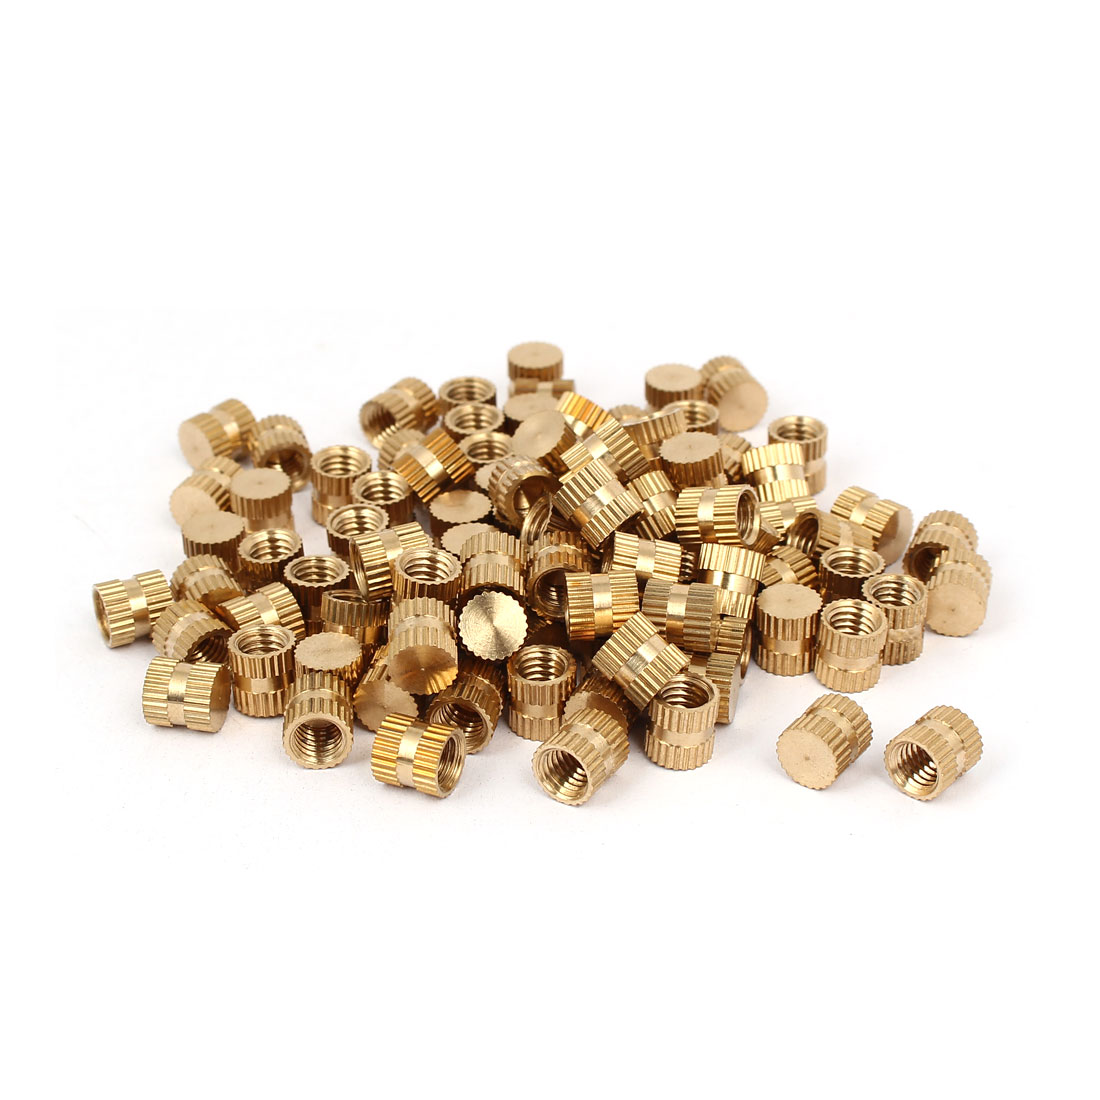 M6 x 8mm 7.8mm OD Brass Injection Molding Insert Knurled Thumb Nut 100PCS - image 3 of 3